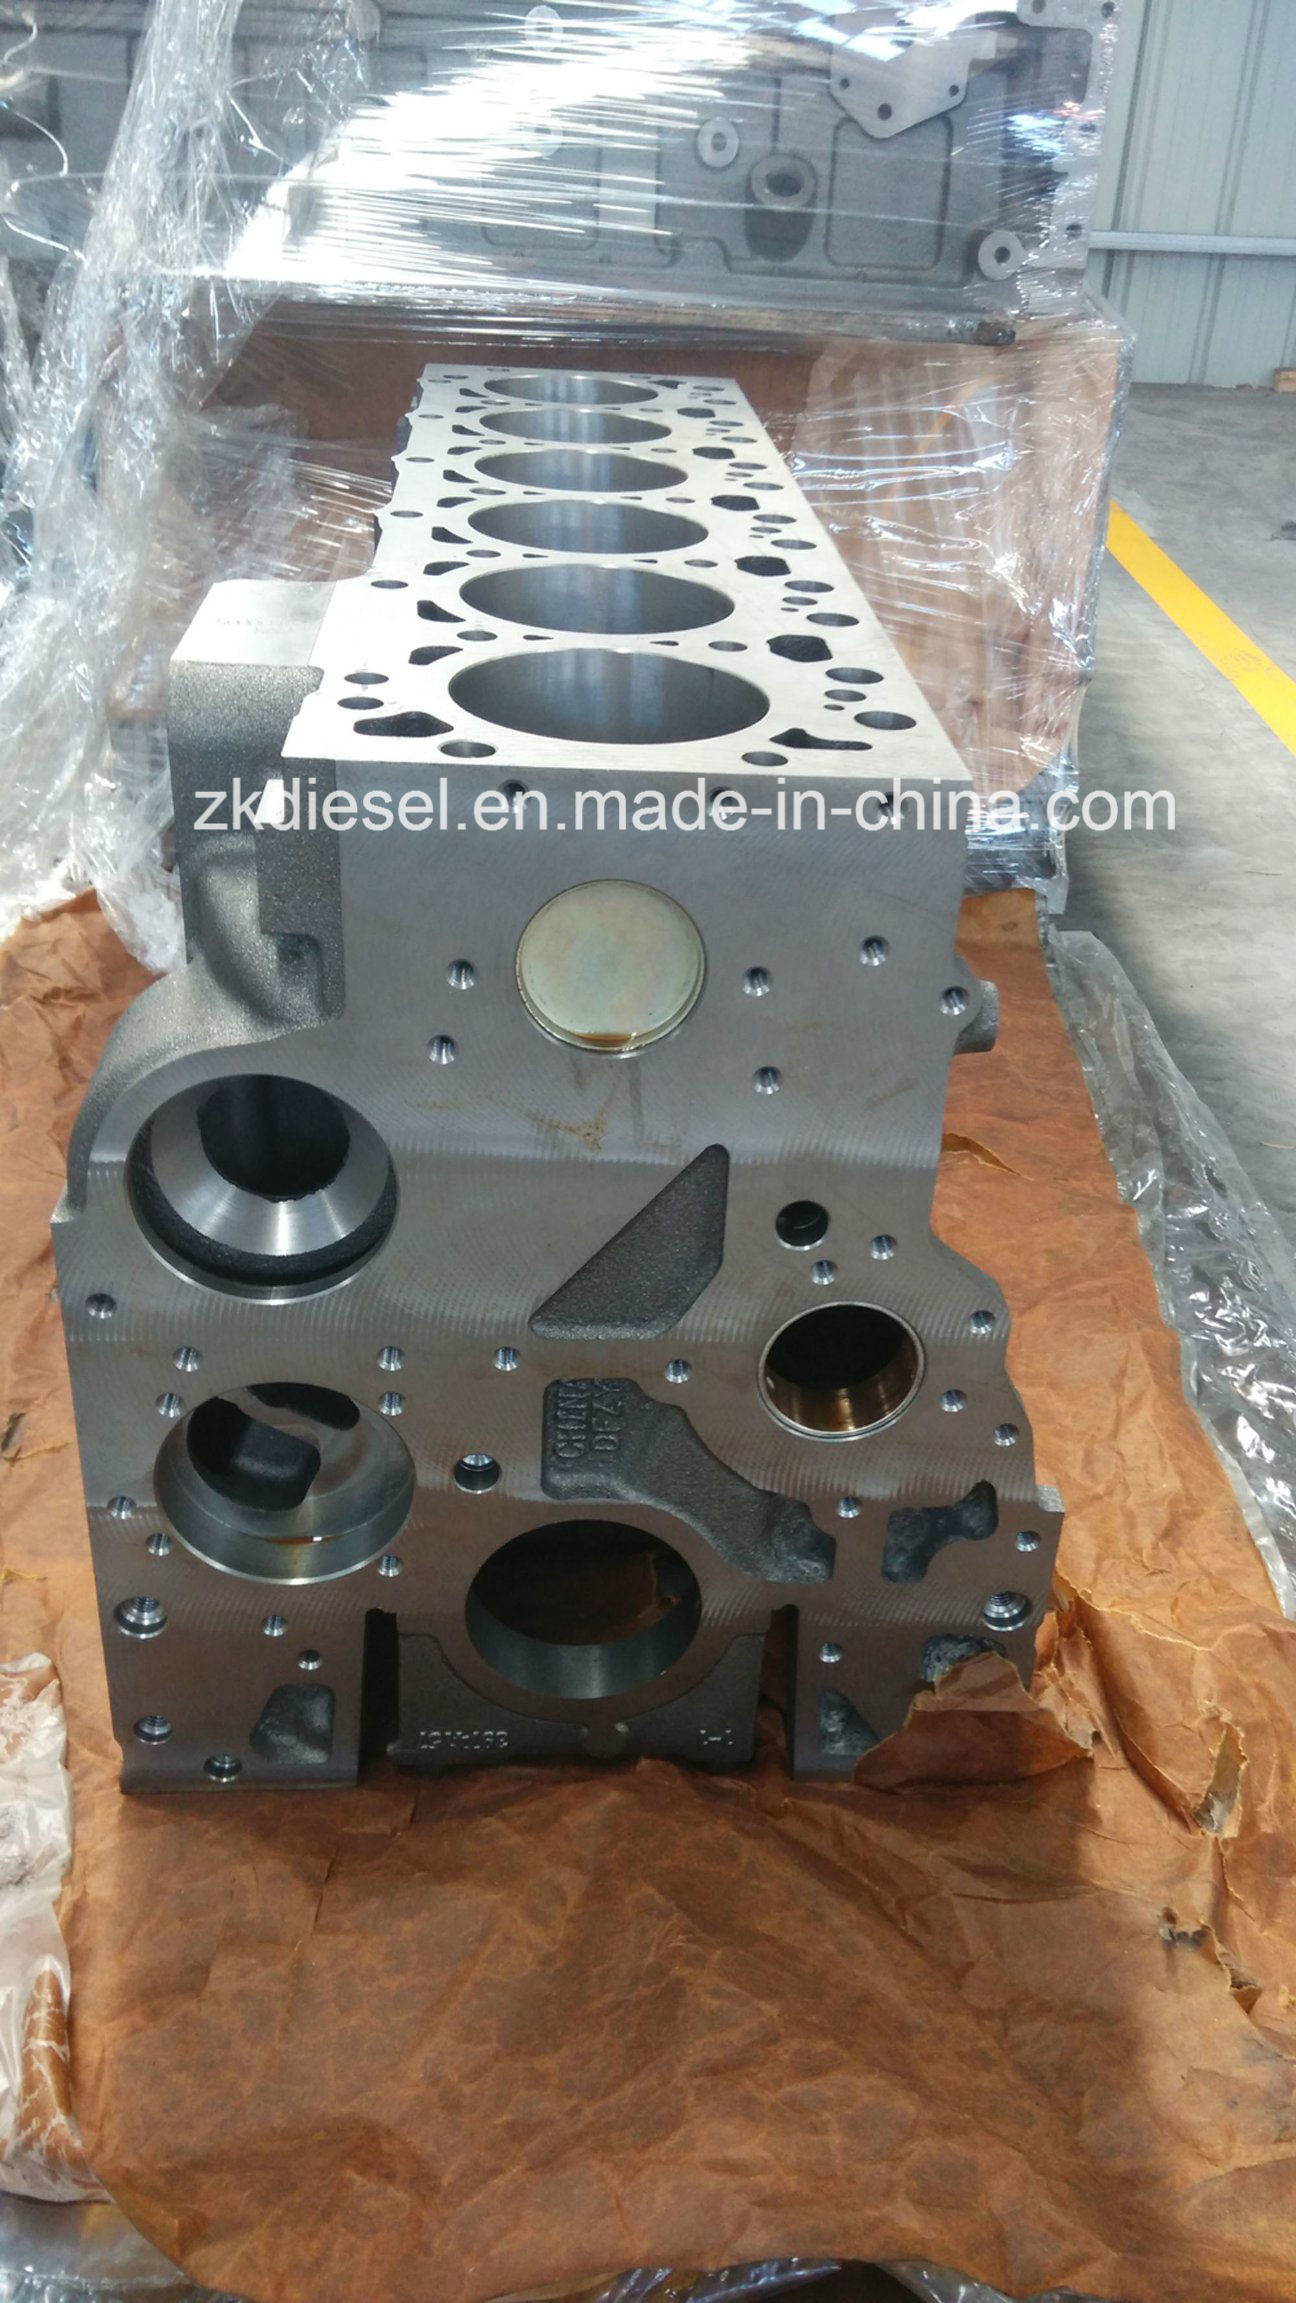 Factory Supply Cummins Isb5.9 Diesel Engine Cylinder Block with Original Casting 4897335/4089119/3971683/4897326/4025230/4025229/3963351/3979008